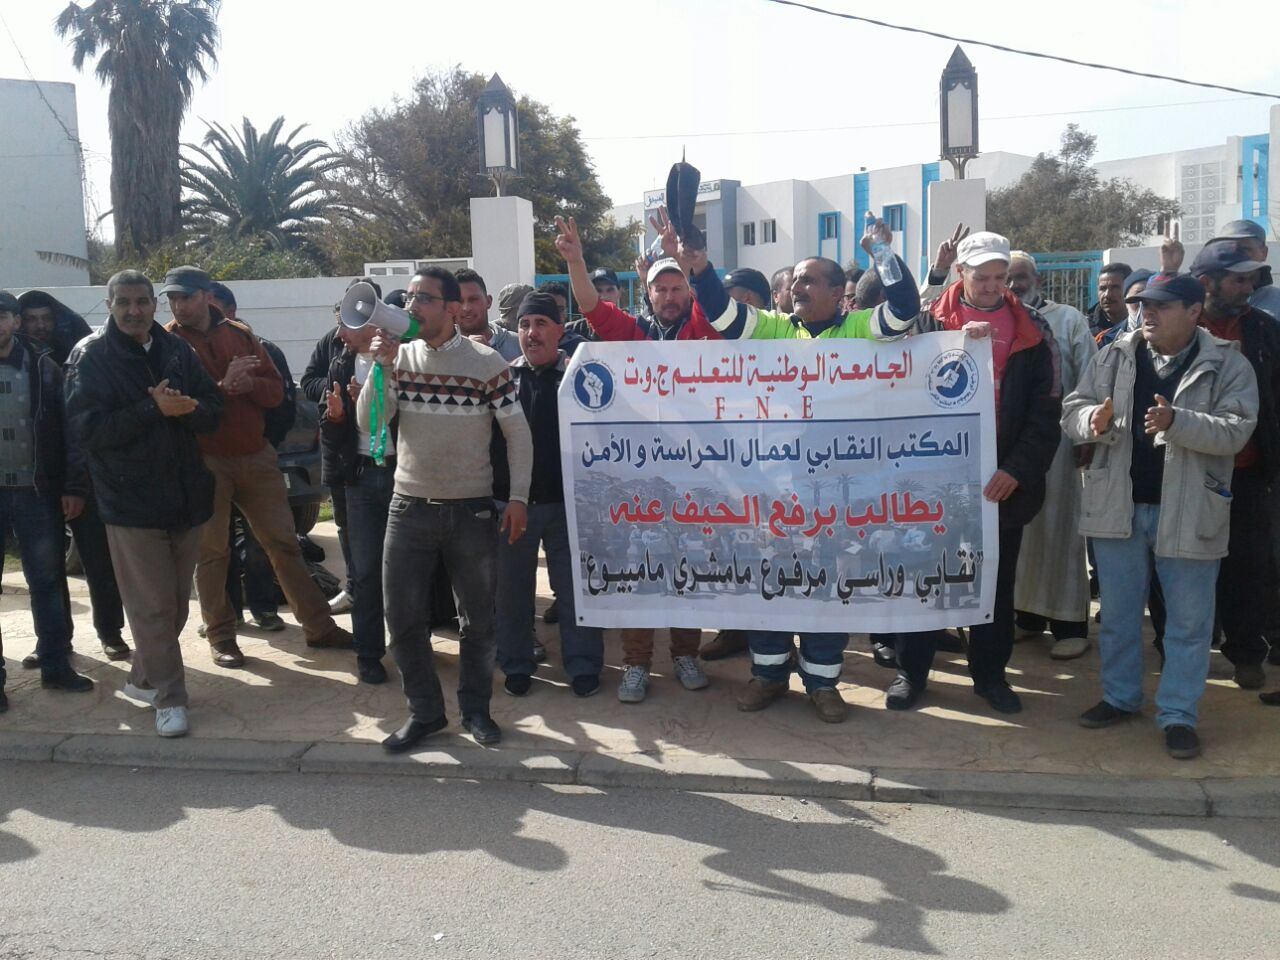 fne-securite-netoyage-madiaq-fnideq-protestation-24-2-2017 (4)